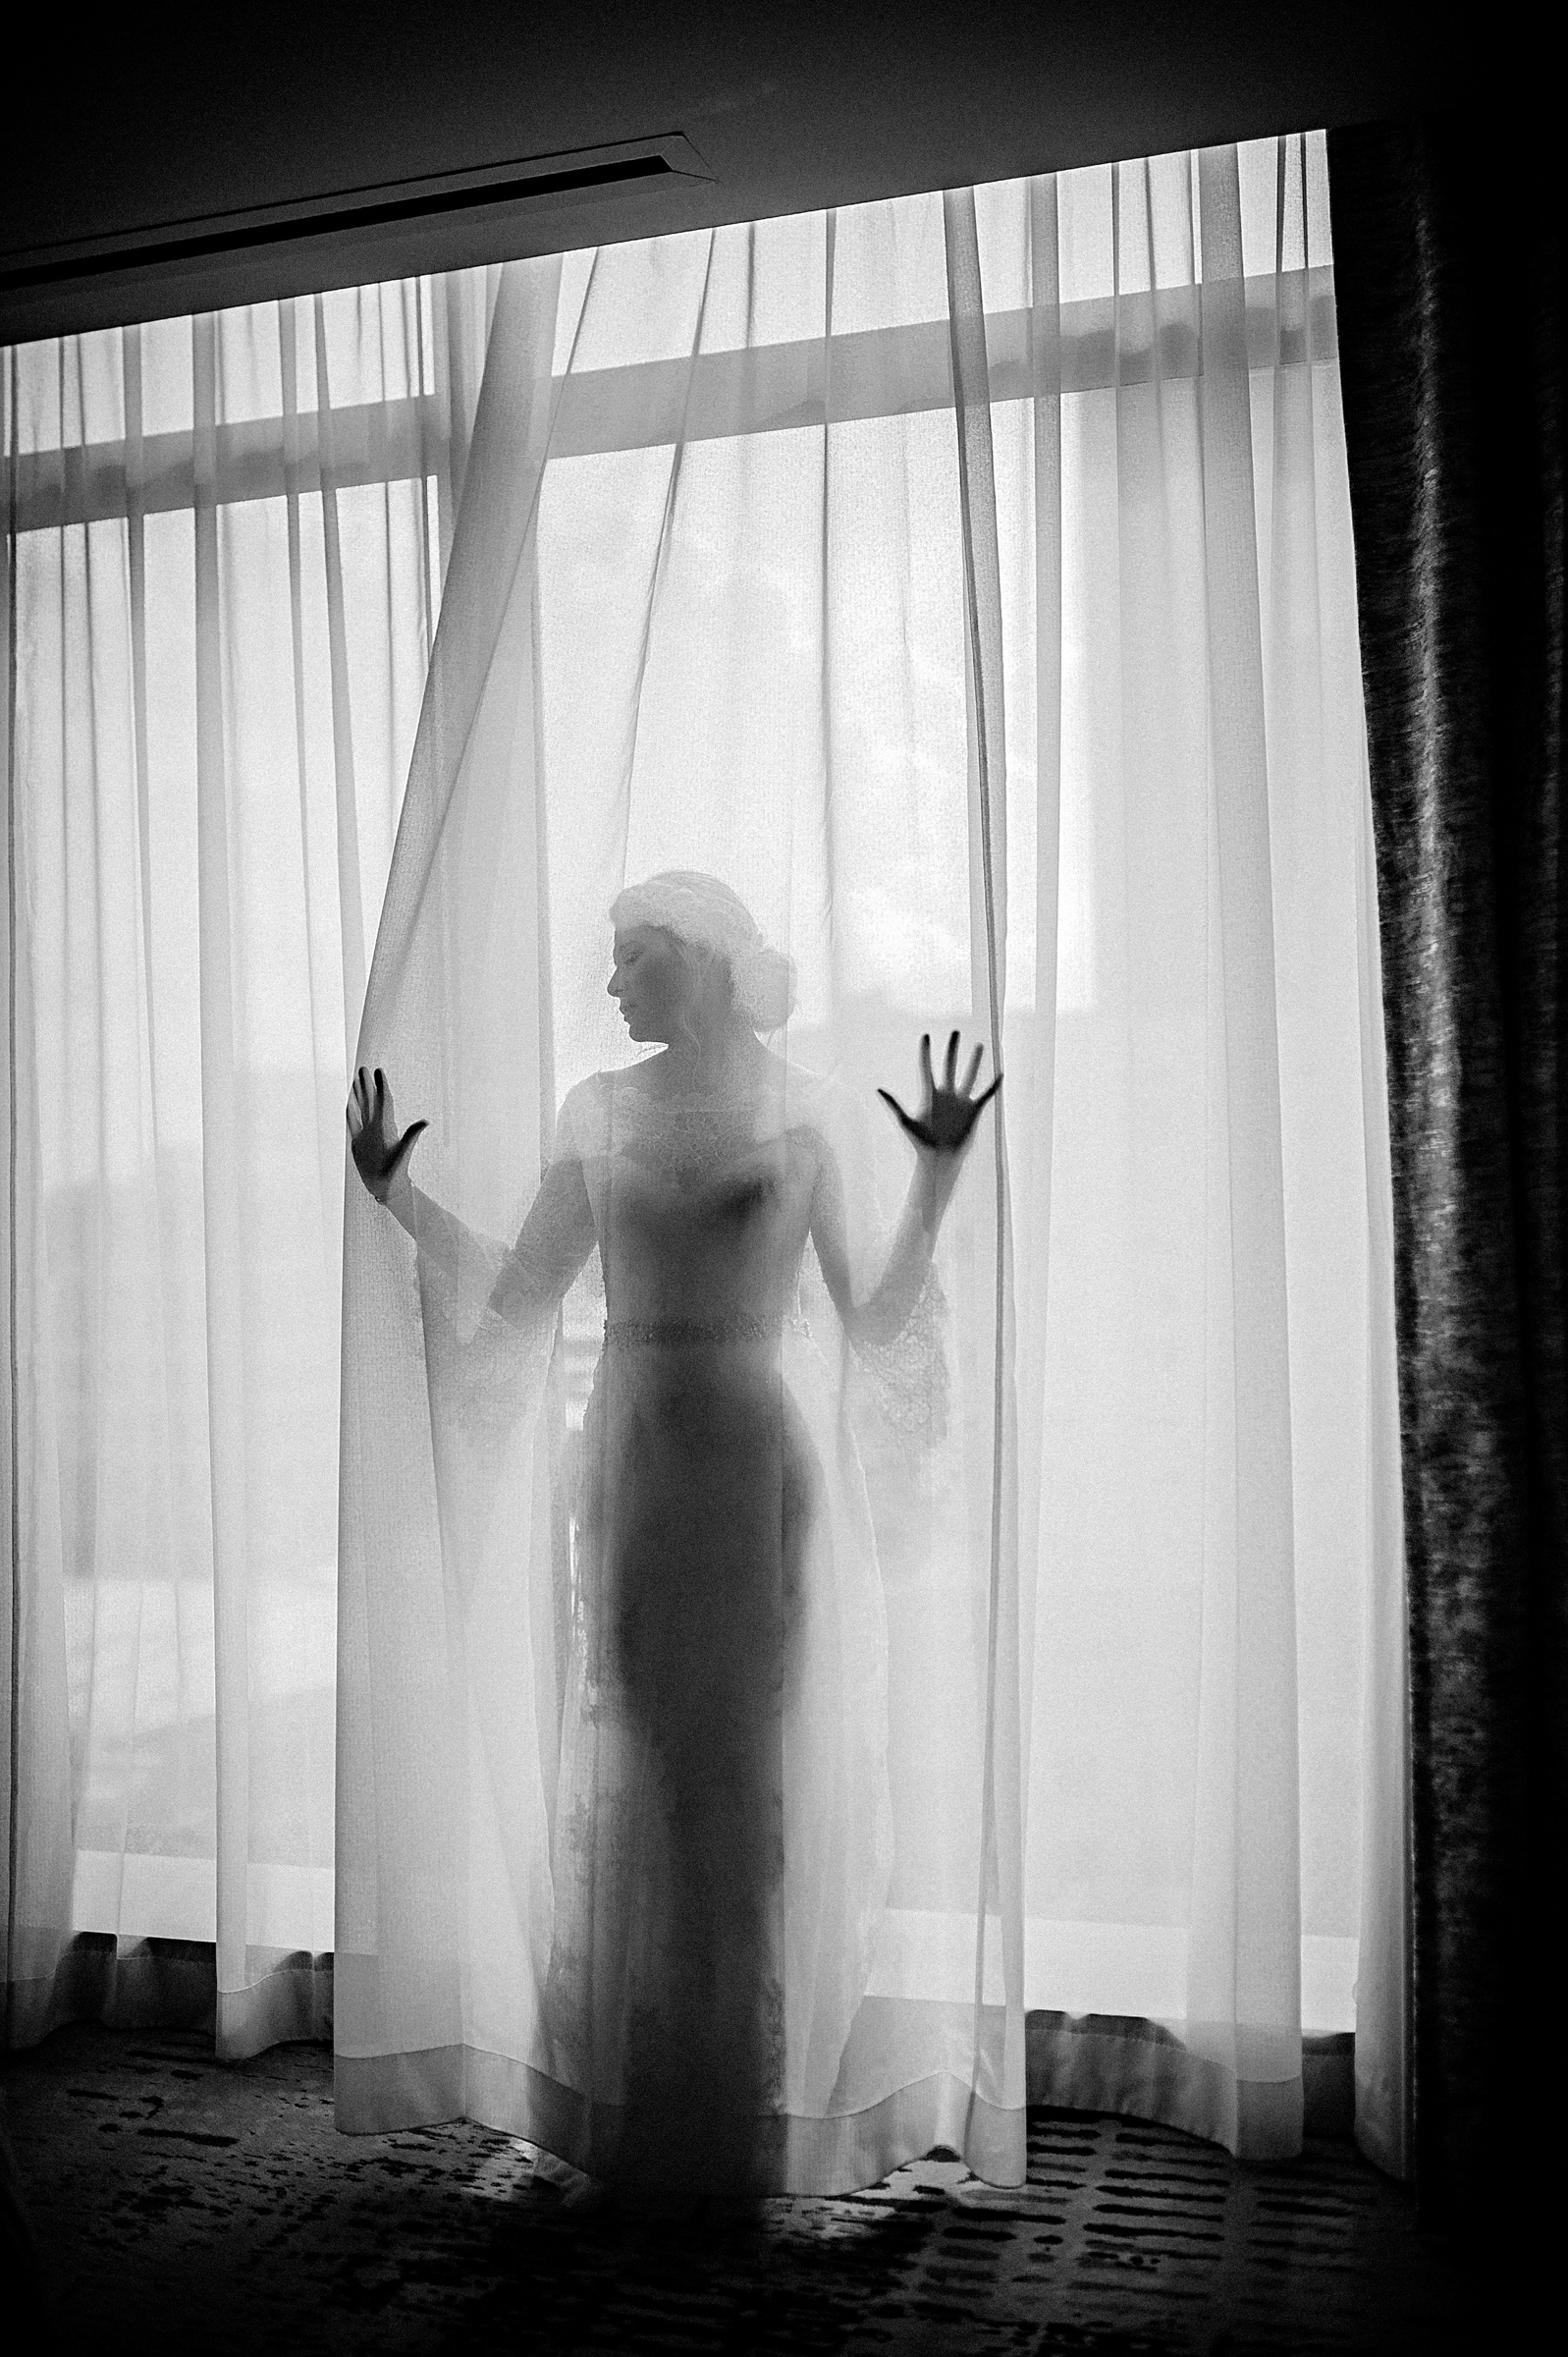 Ethereal moody bride by window by Richard Israel